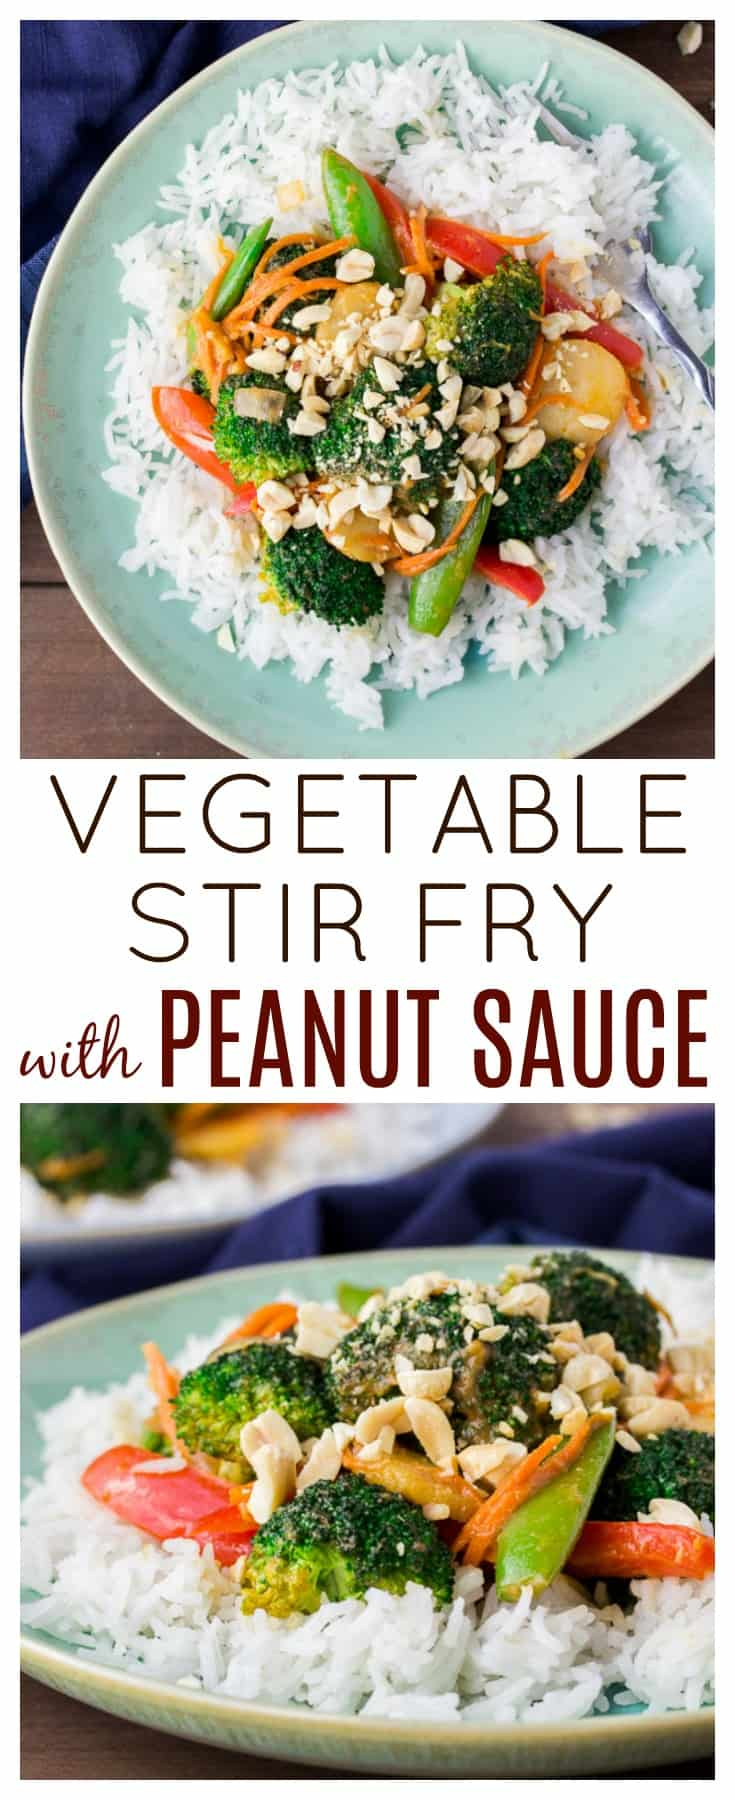 Vegetable Stir Fry with Peanut Sauce is an easy main dish recipe! This vegetarian dish can easily be modified to suit your own tastes. Switch out veggies for whichever ones you prefer and have dinner on the table in less than 30 minutes! | #dlbrecipes #30minutemeals #vegetablestirfry #vegetarian